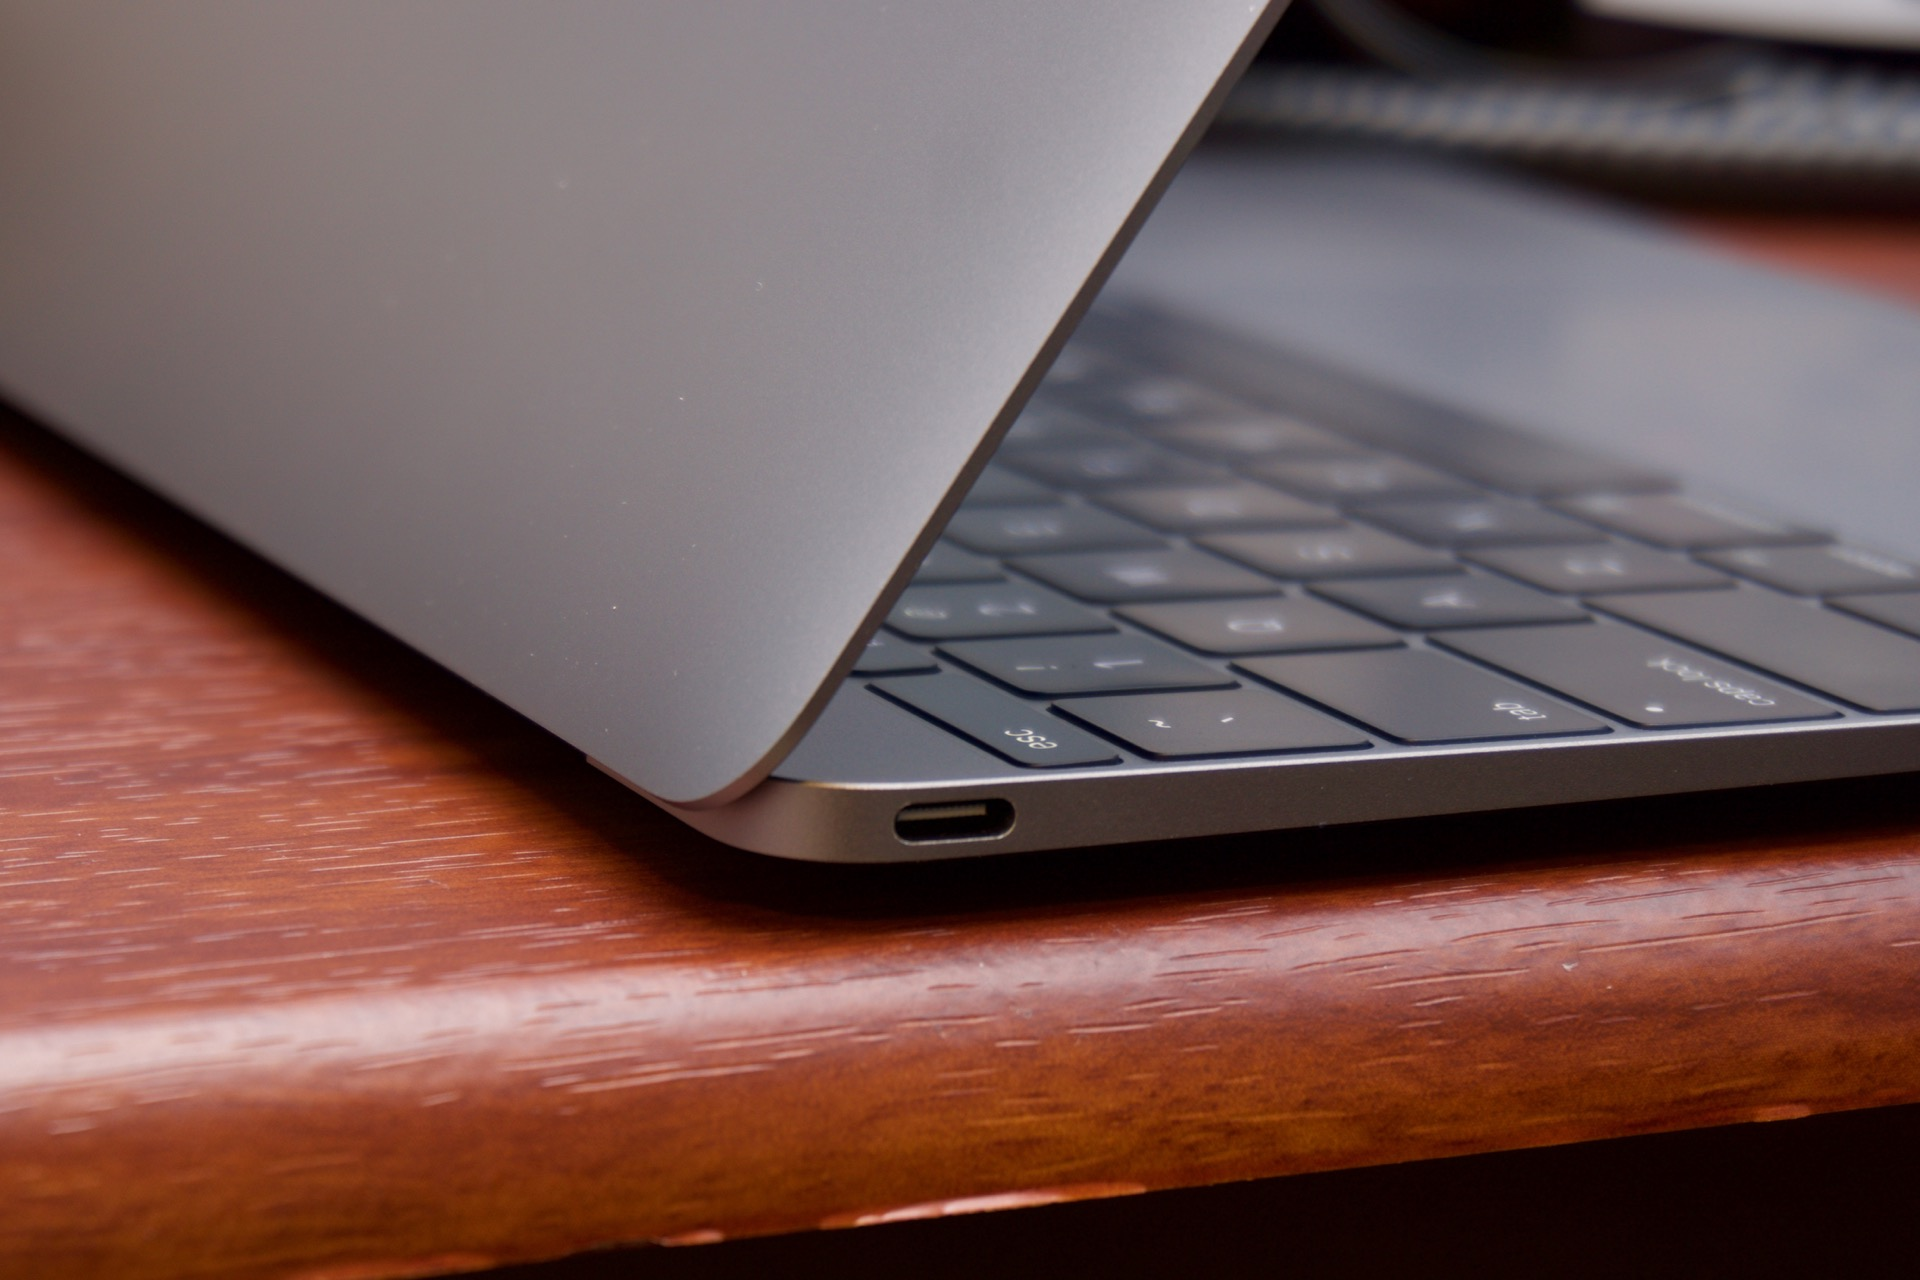 USB Type-C is all you get with the new MacBook.